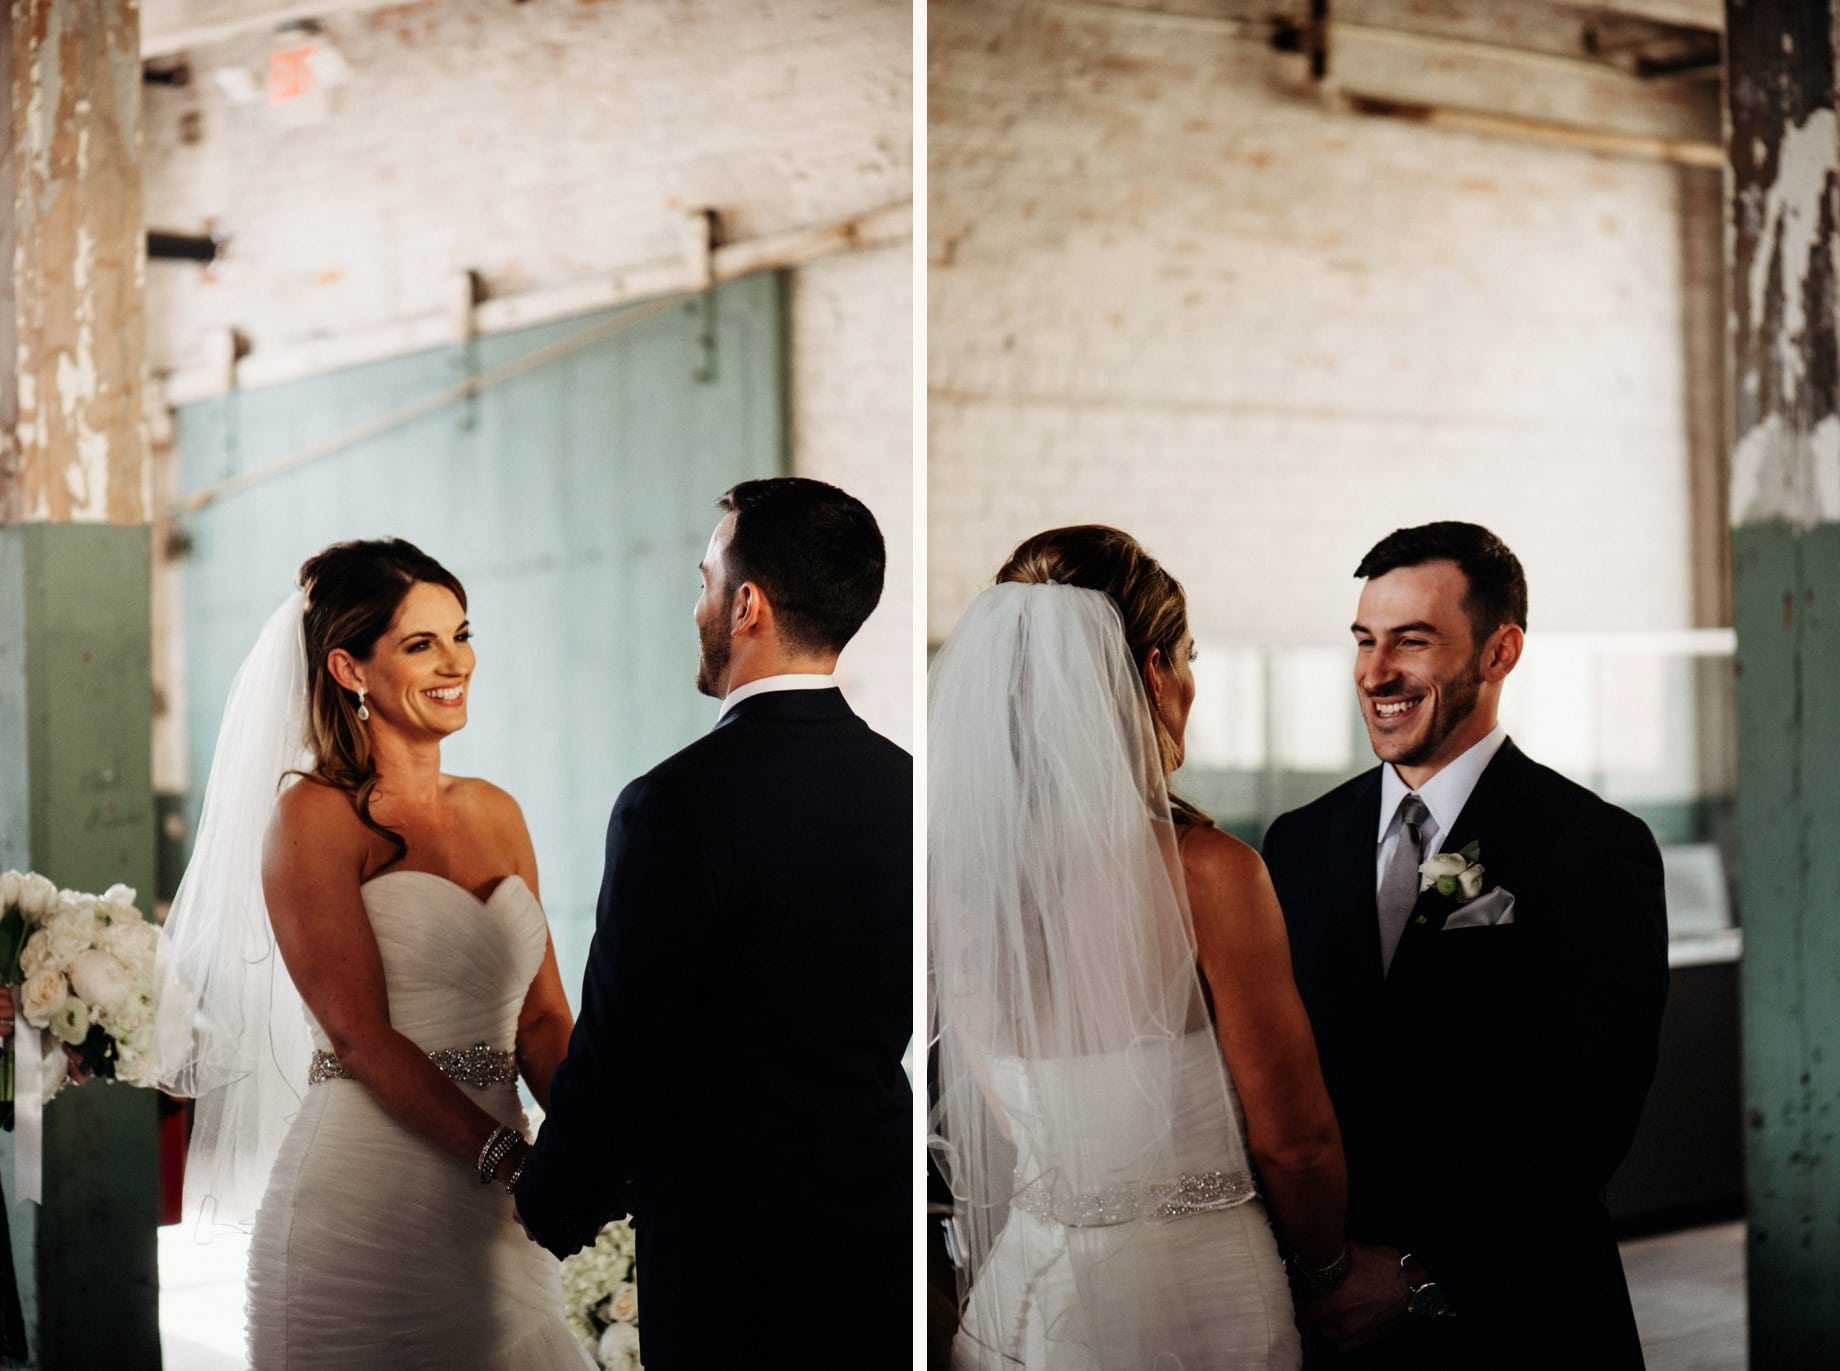 bride and groom during their wedding ceremony at the ford piquette plant